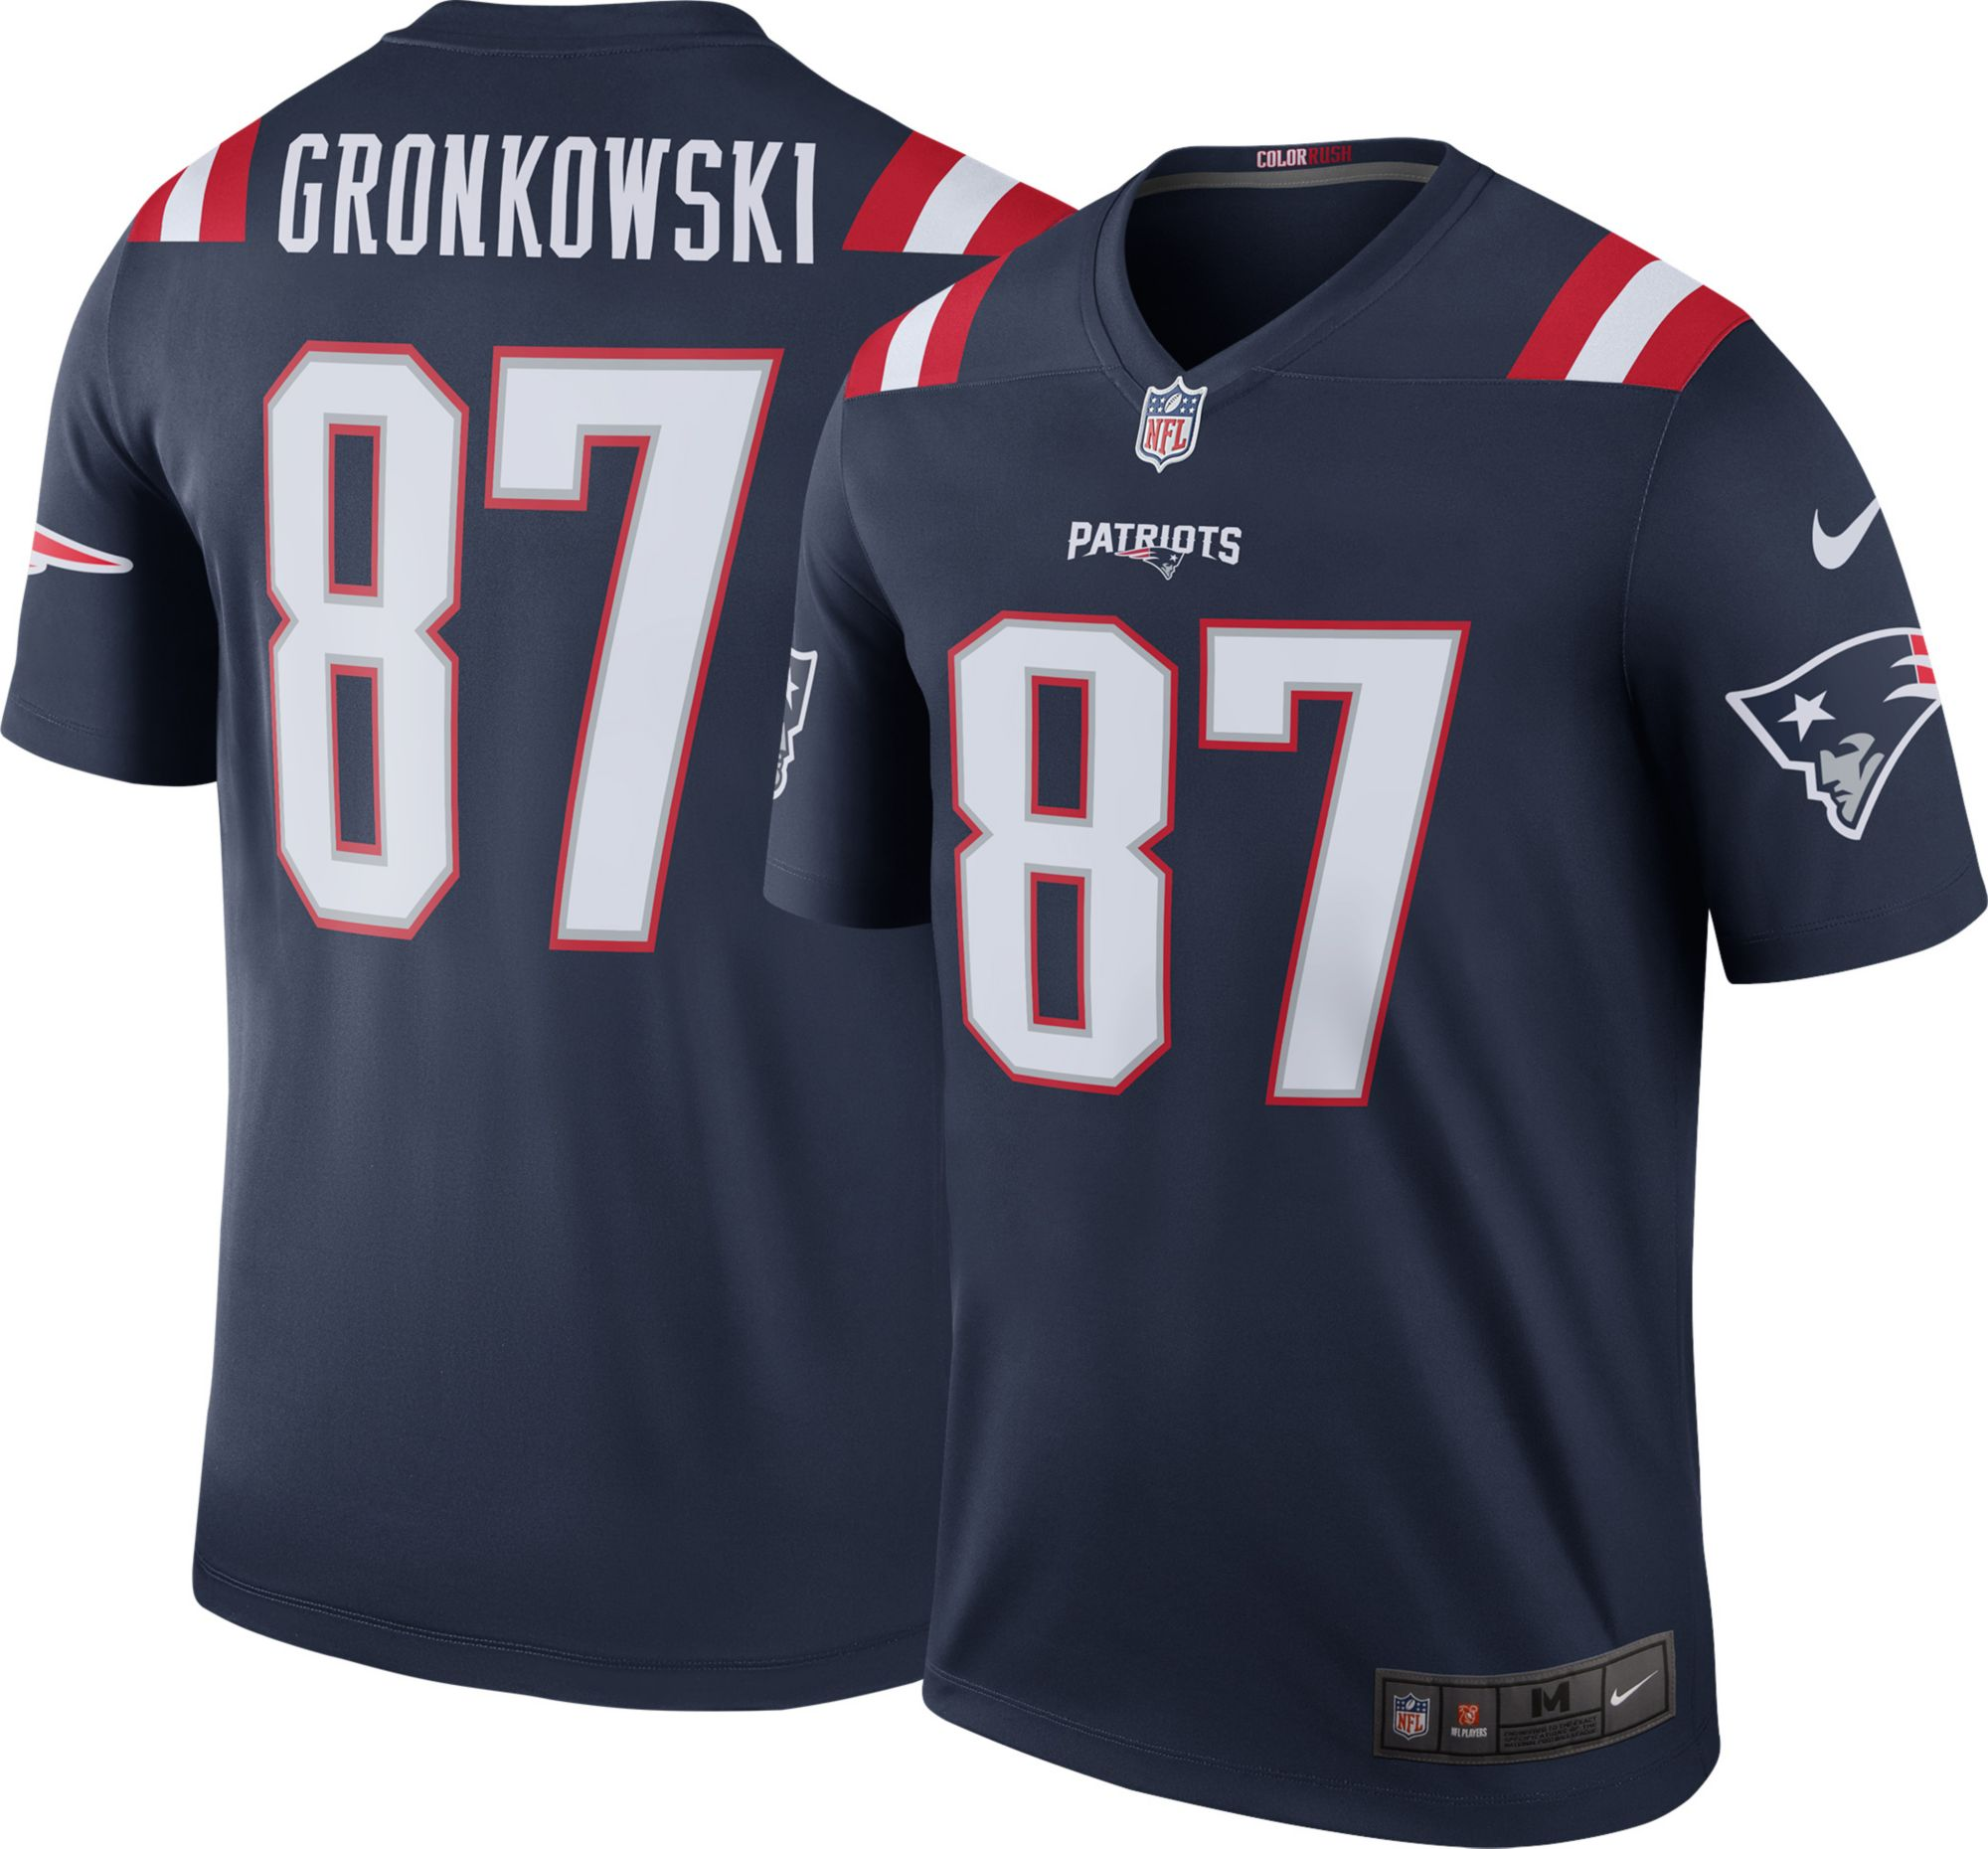 rob gronkowski jersey signed